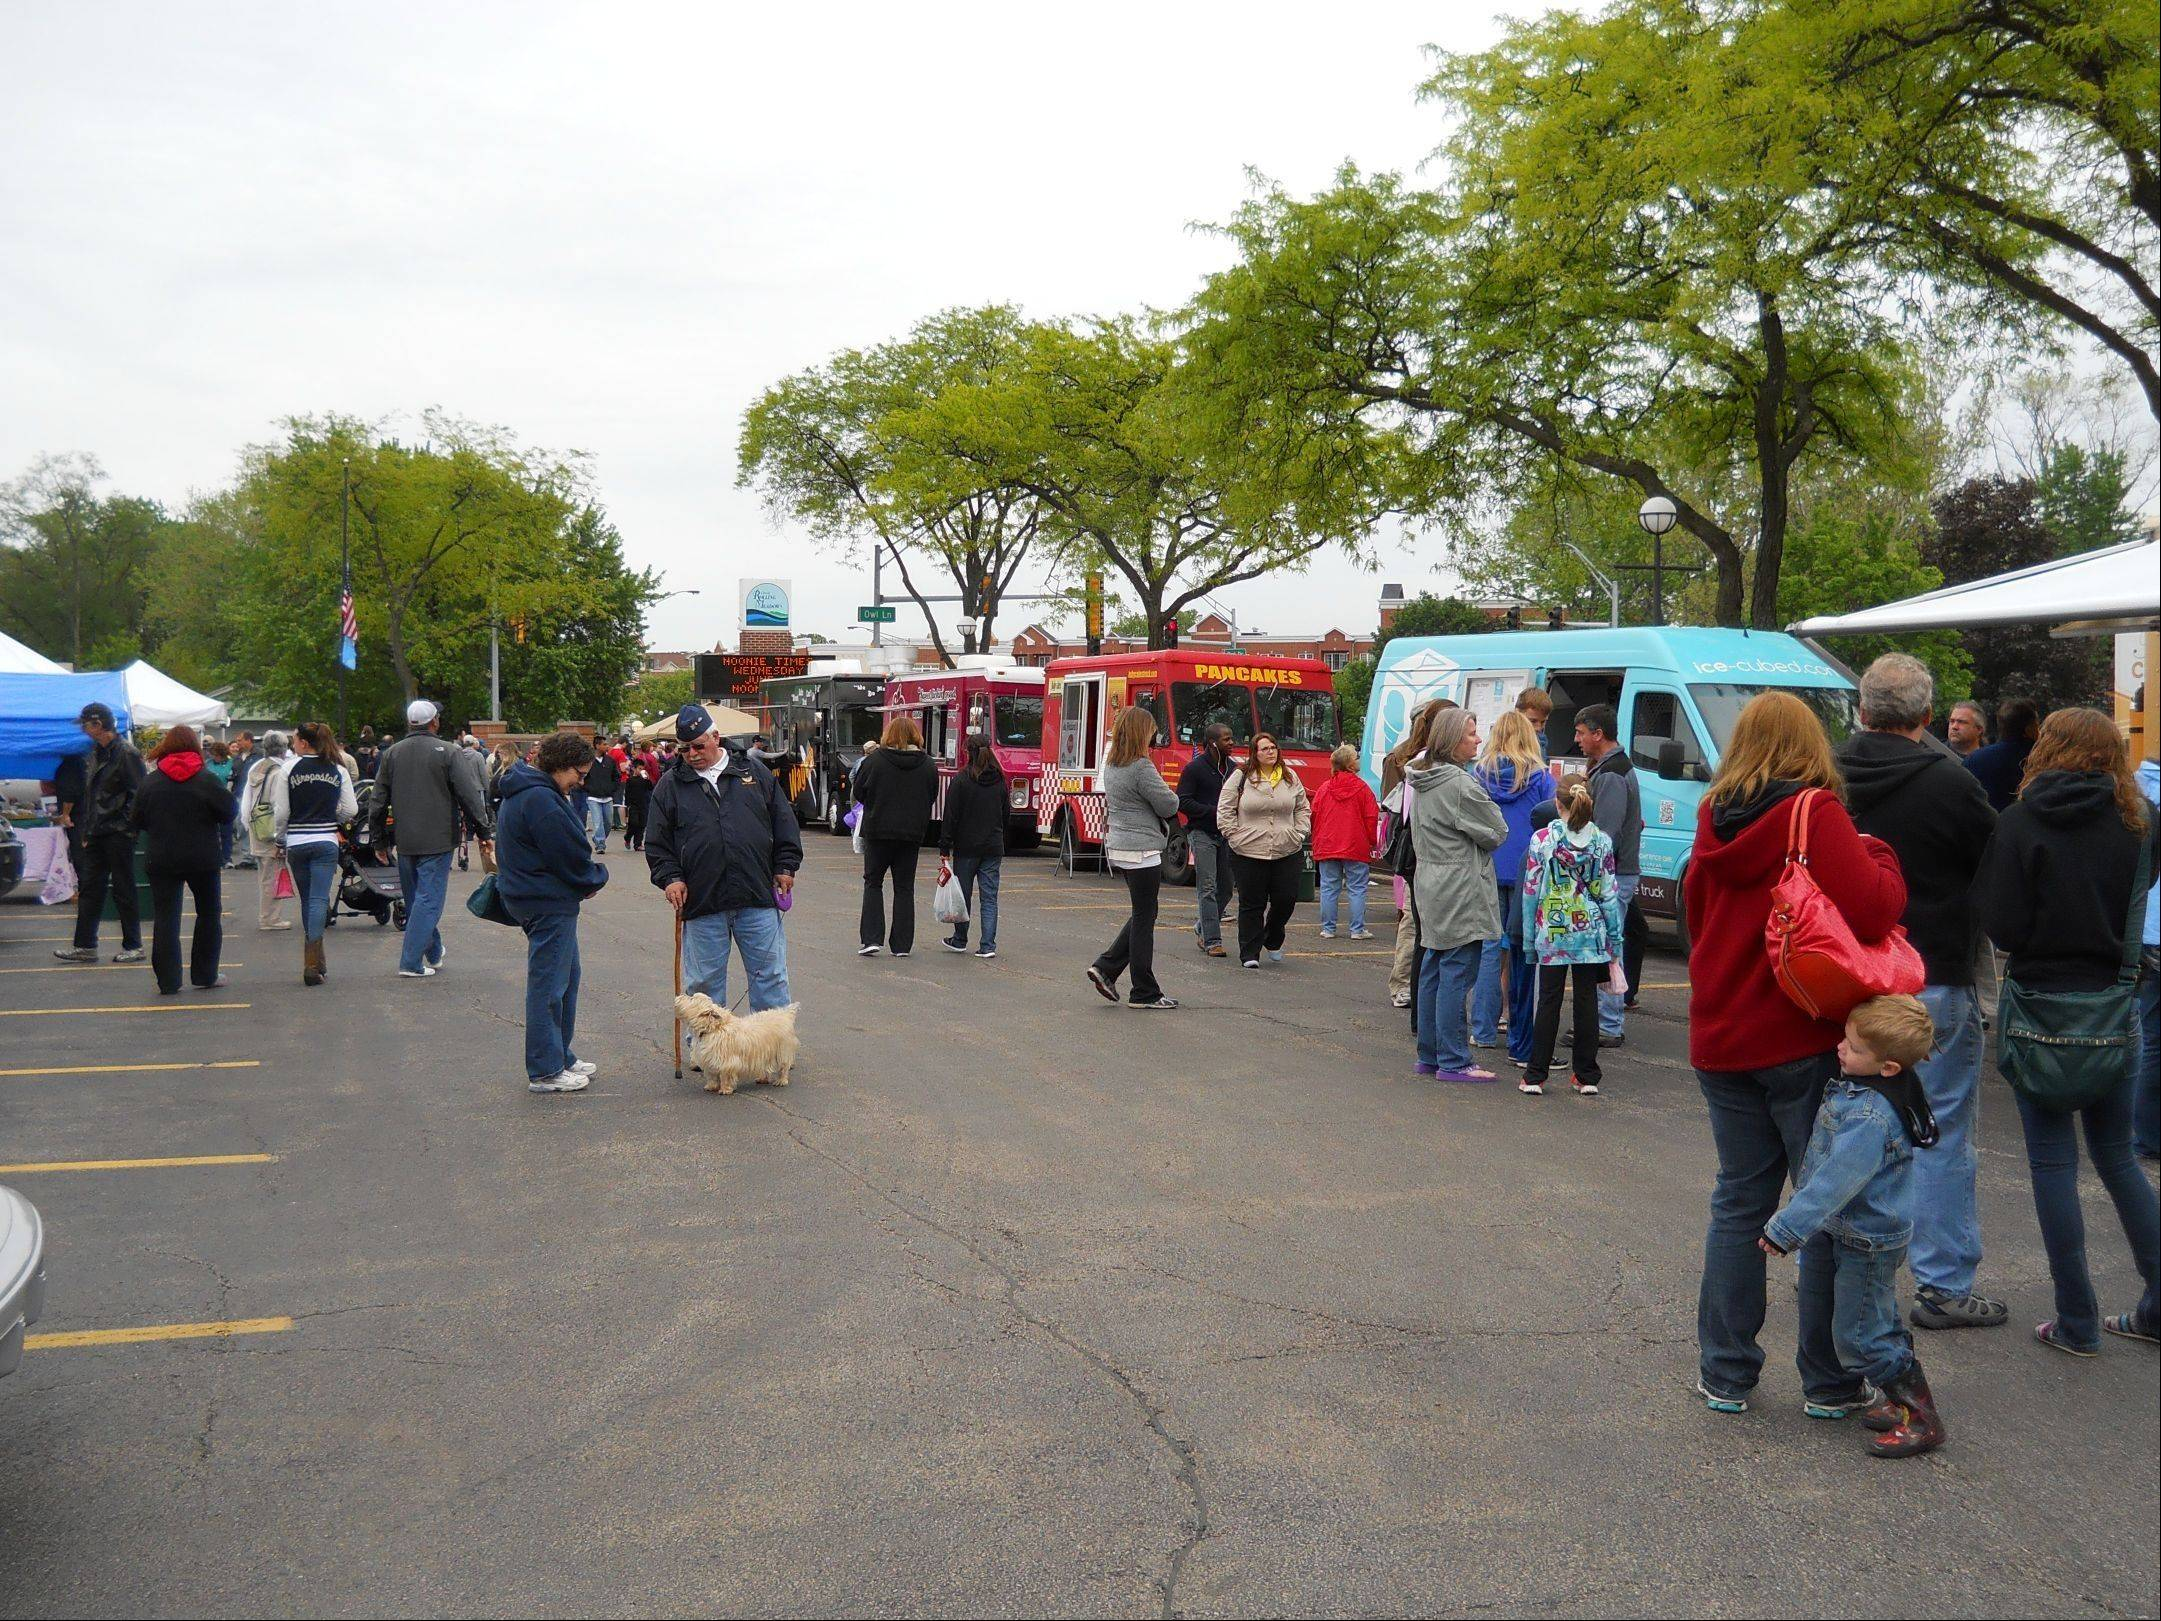 The first monthly Rolling Meadows Farmers Market/Food Truck event occurred May 25.